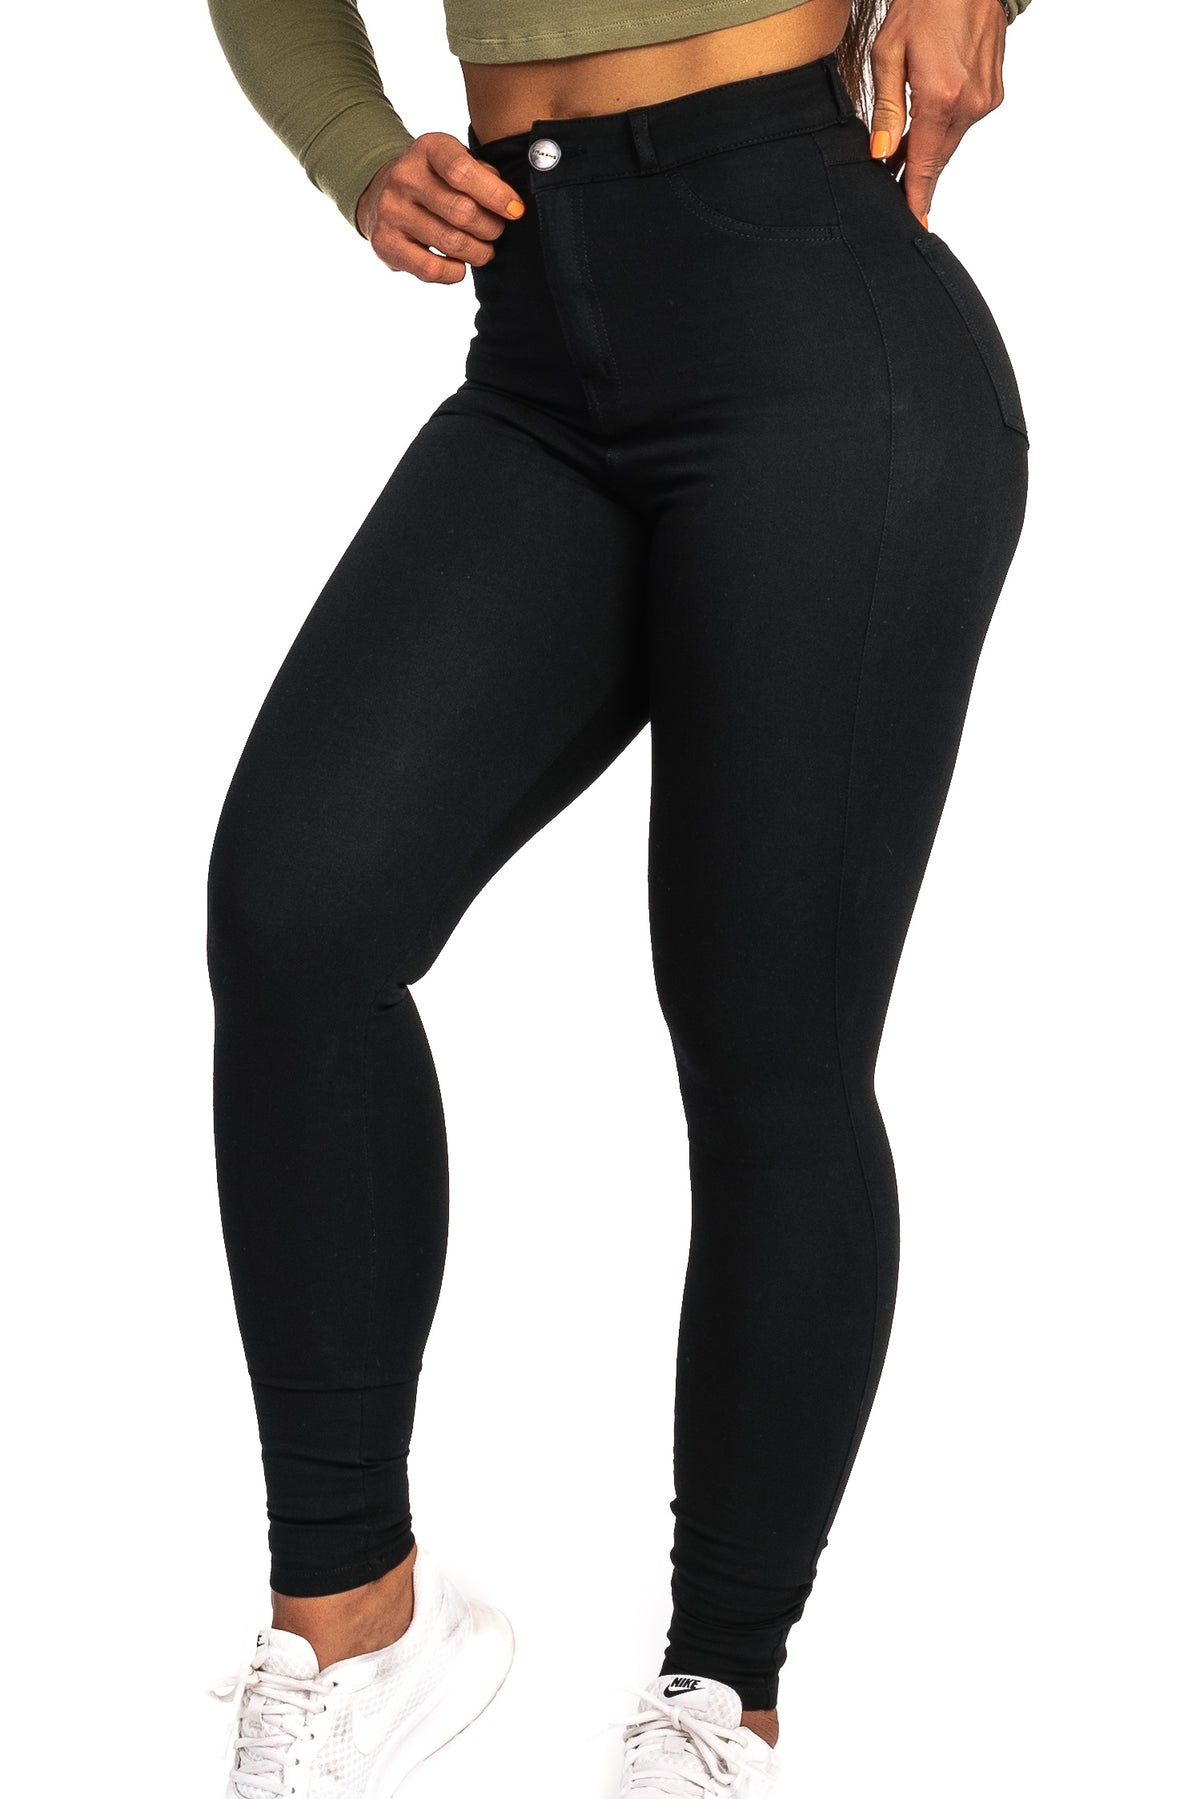 Womens 360 High Waisted Fitjeans - Black - Fitjeans Norge